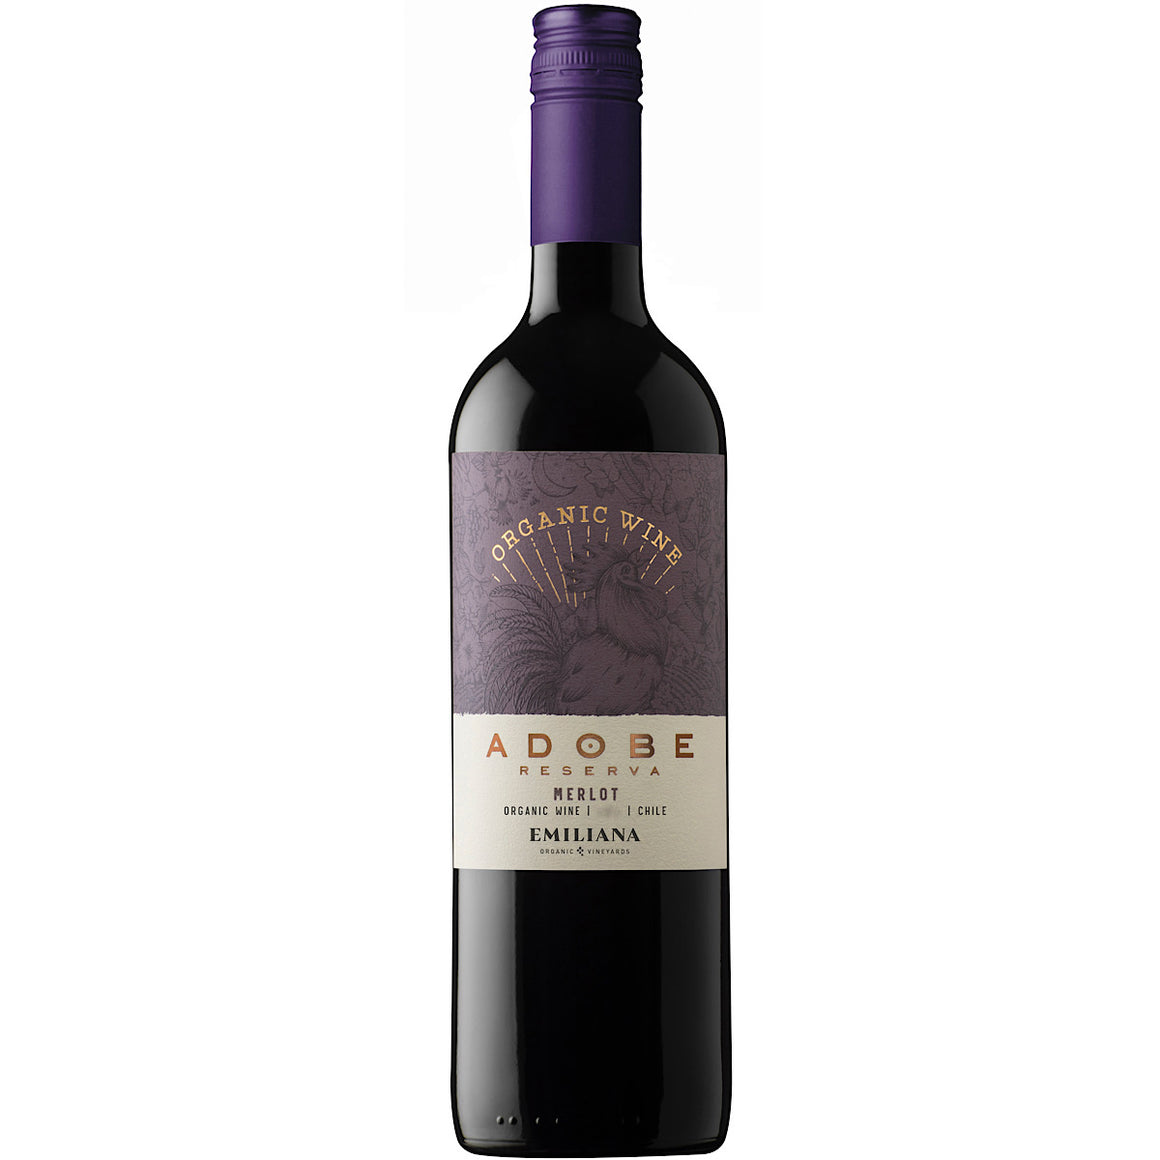 Adobe Reserva Merlot 12 Bottle Case 75cl